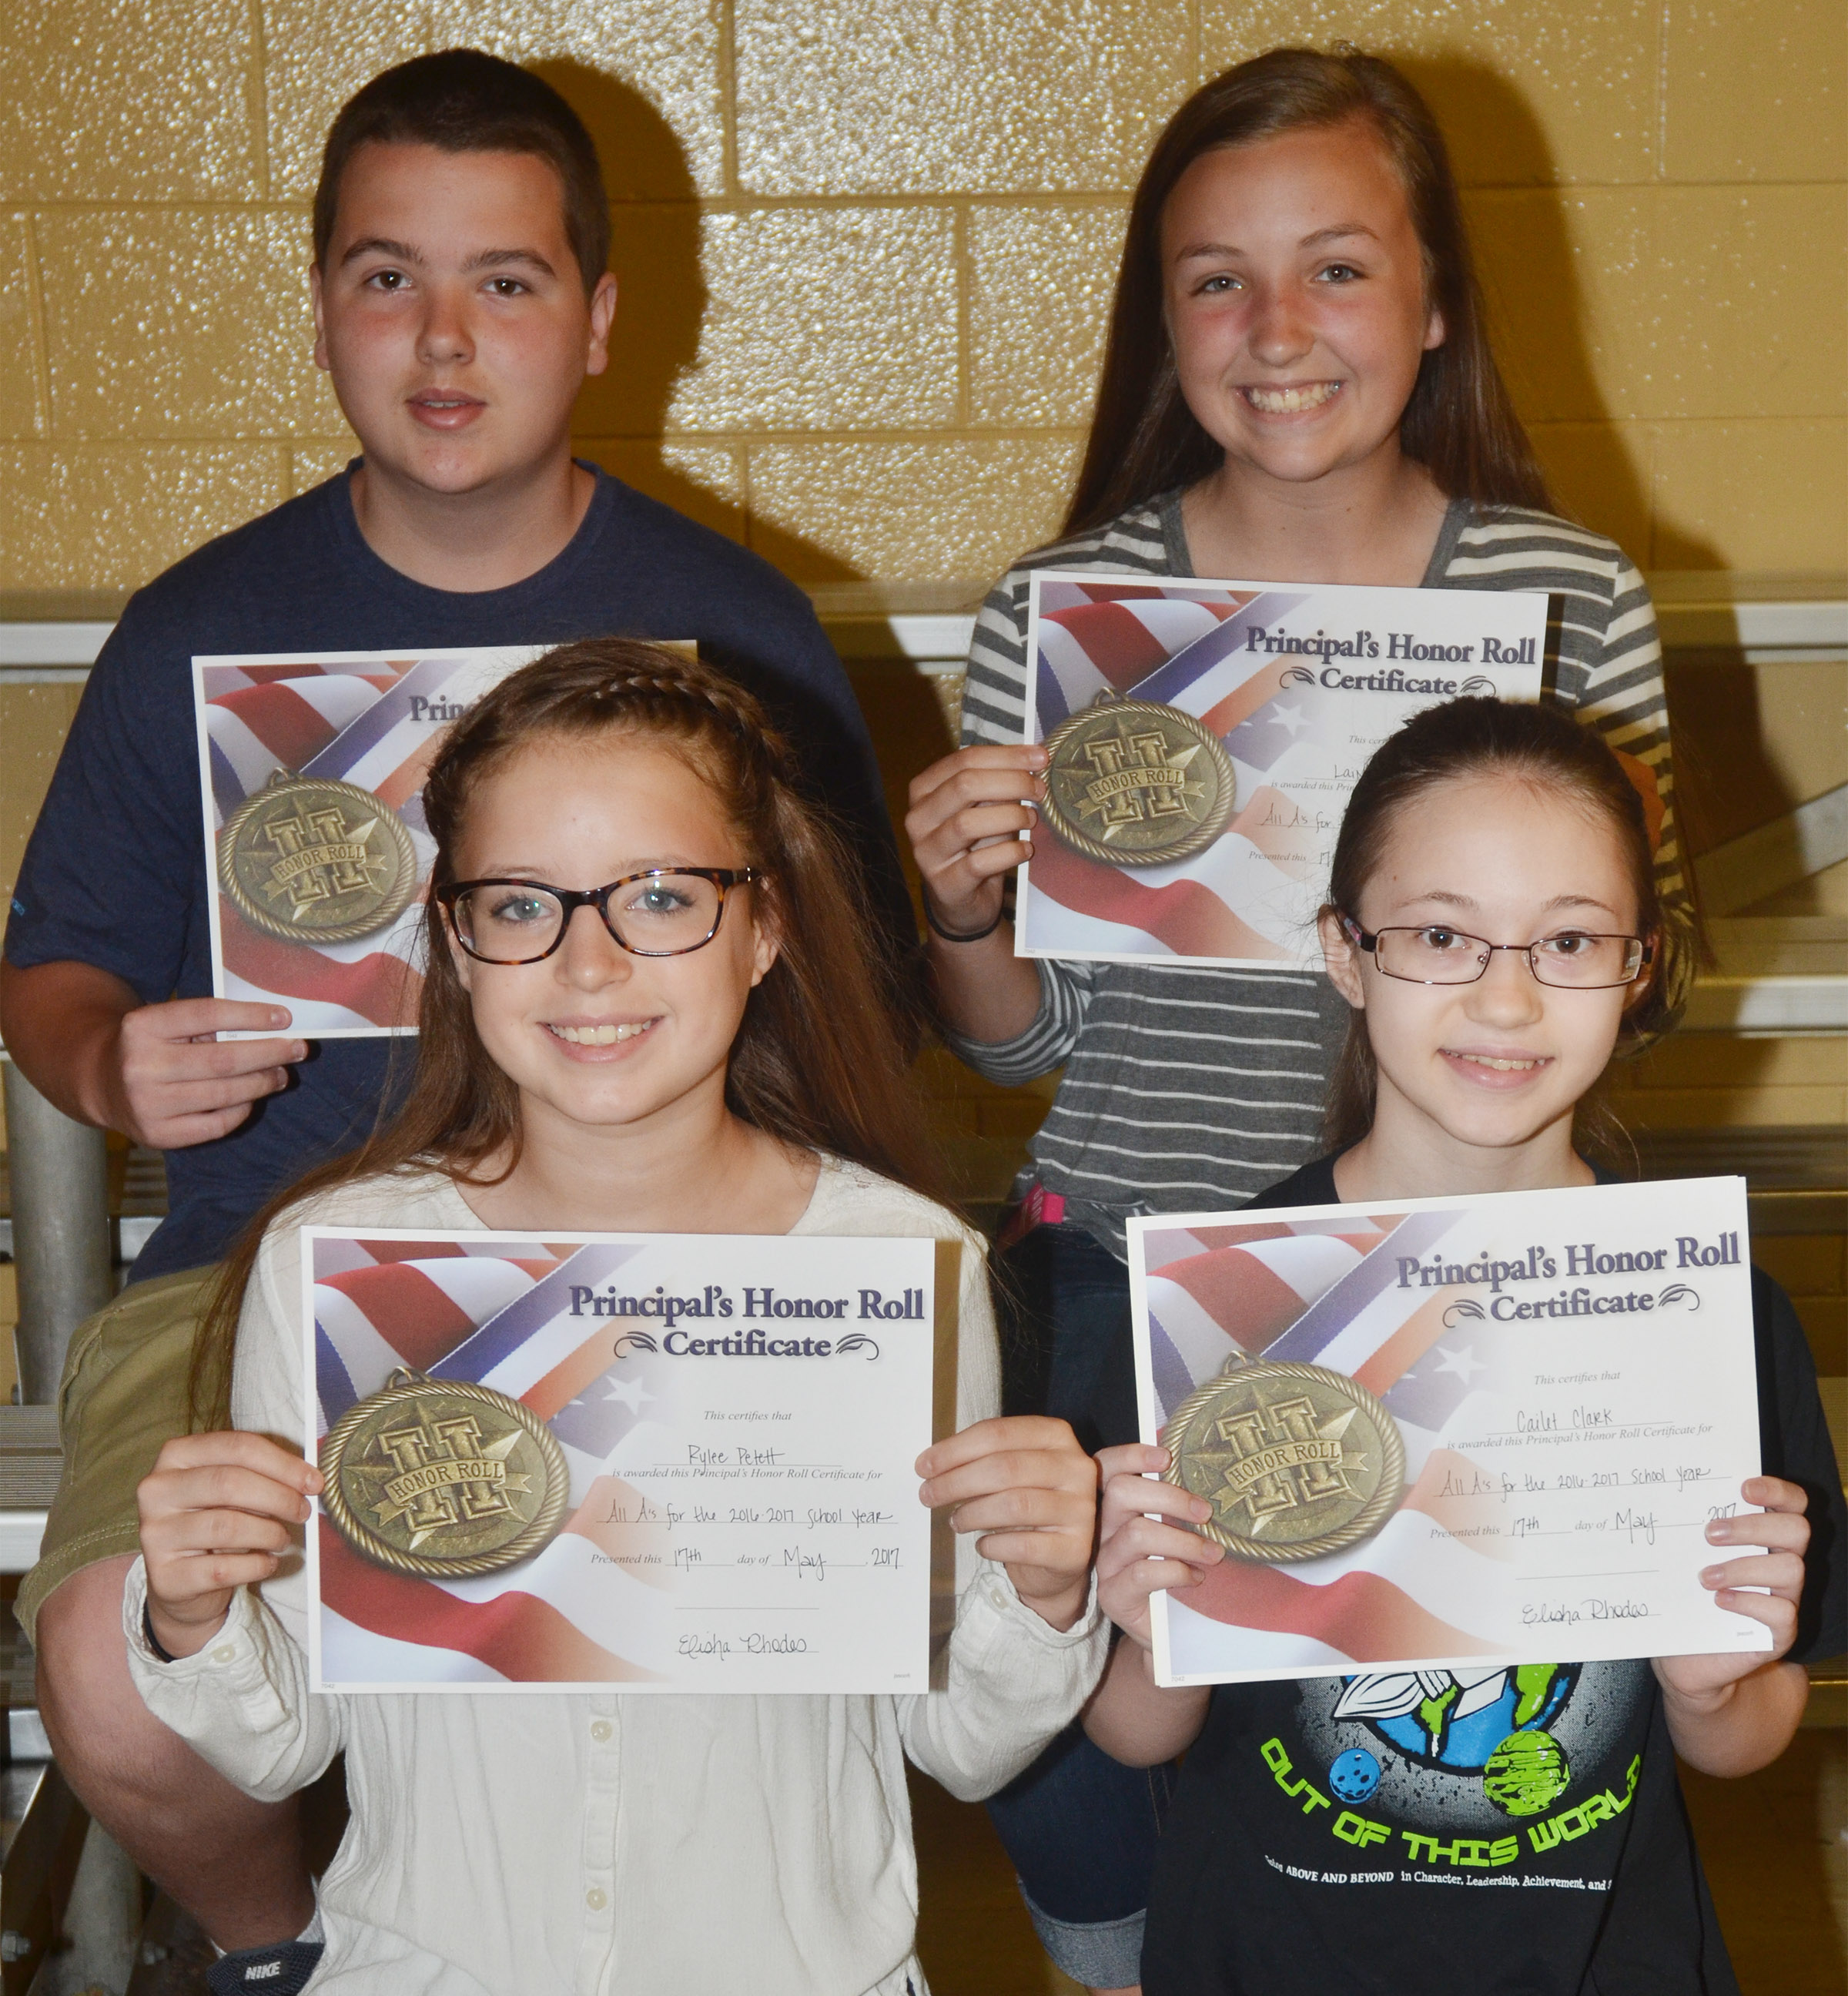 Seventh-grade principal's honor roll award winners are, from left, front, Rylee Petett and Cailet Clark. Back, Jack Sabo and Lainey Watson.